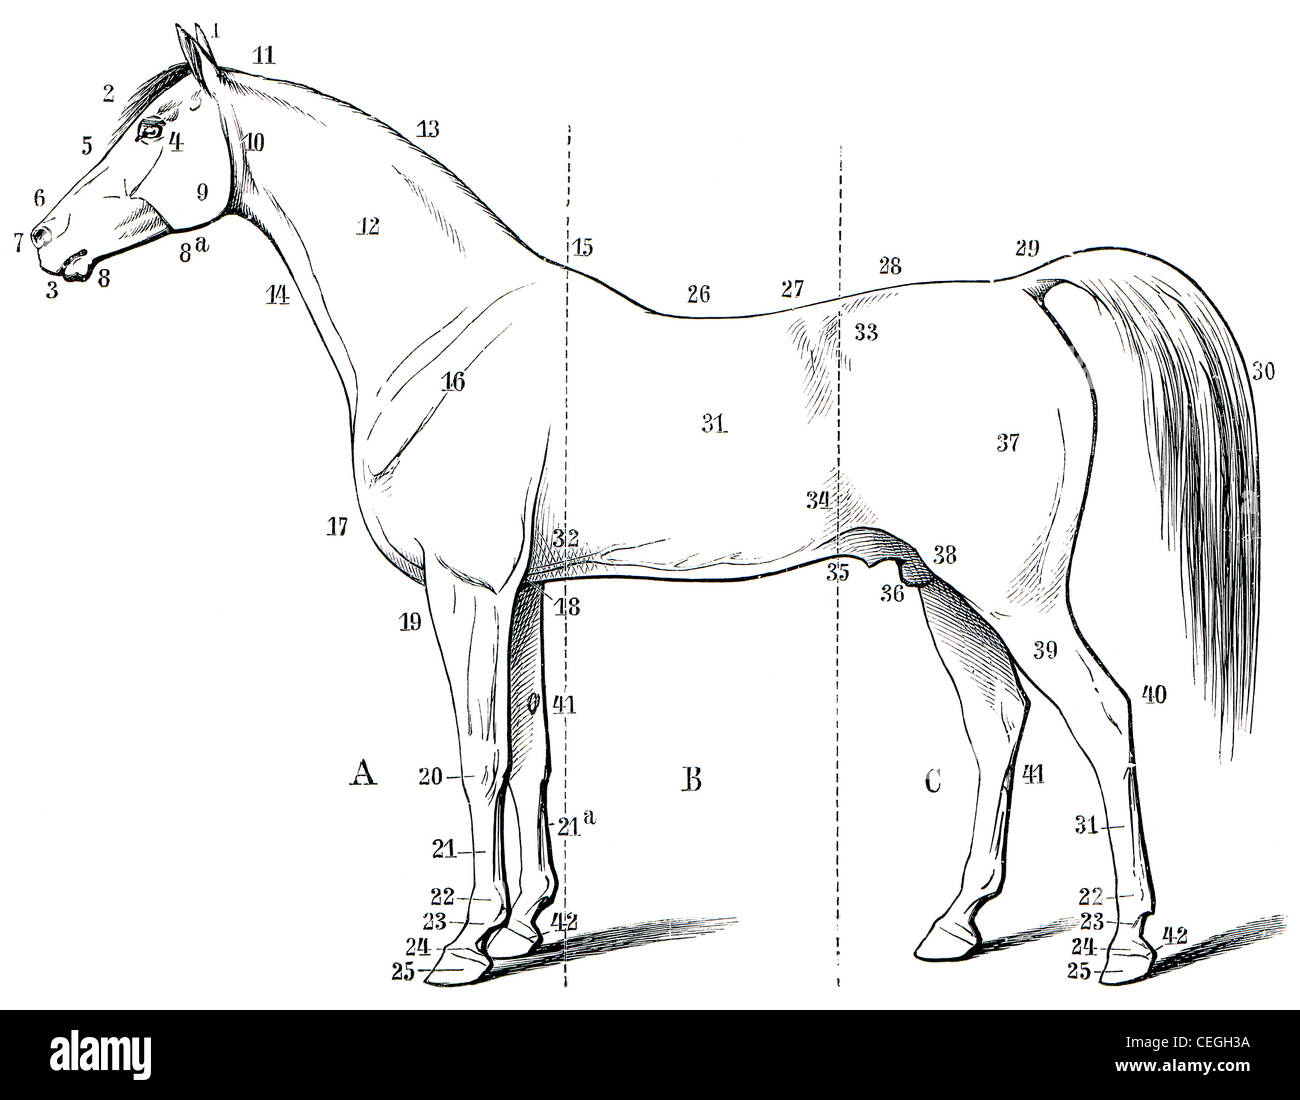 Horse External Anatomy Image collections - human body anatomy